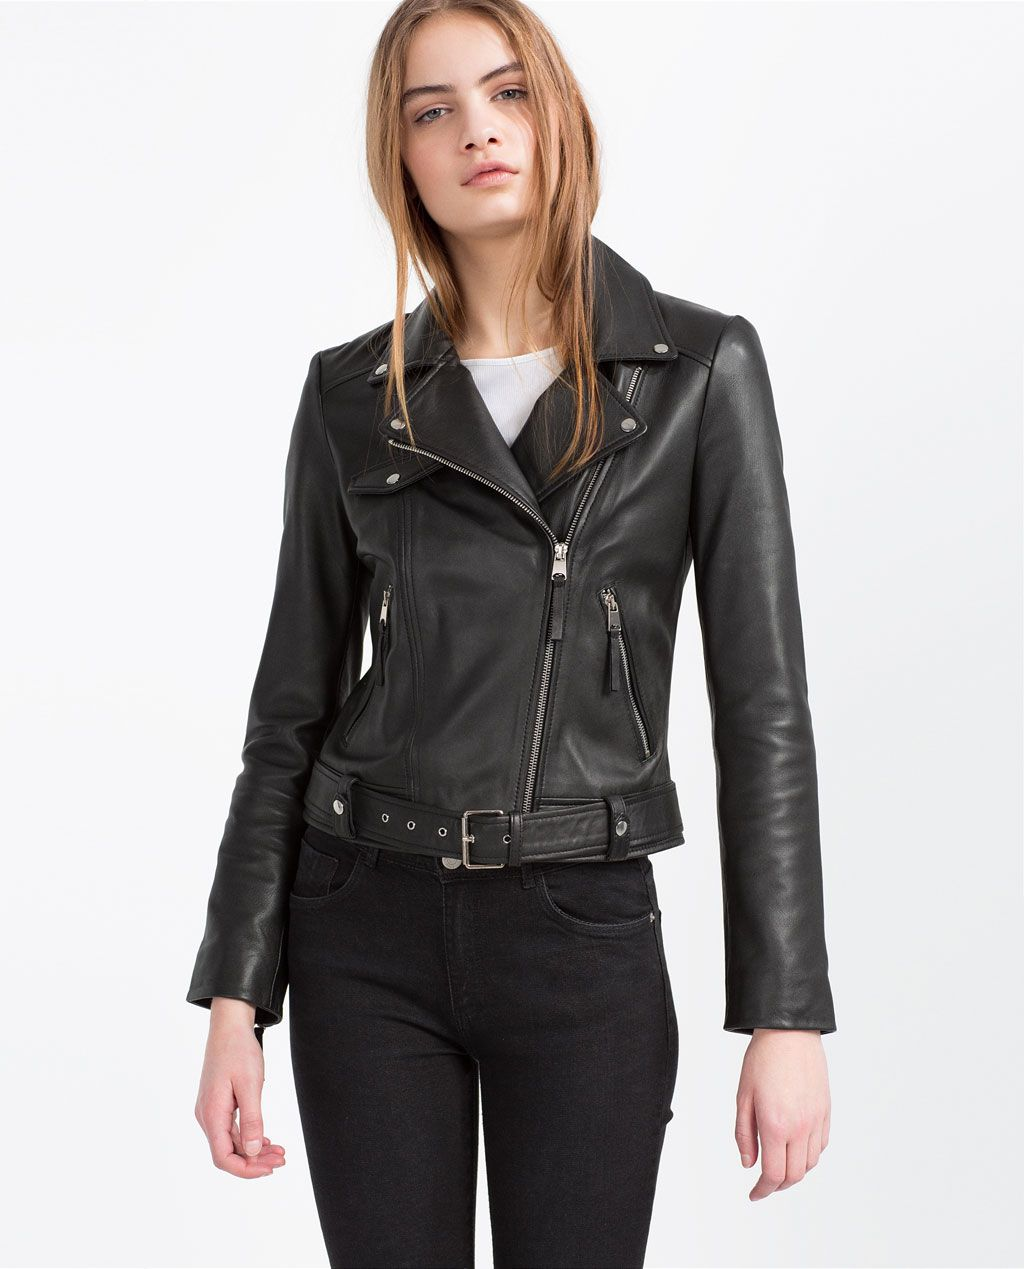 a9c8af3f0b0 BASIC LEATHER JACKET-View All-LEATHER-WOMAN | ZARA United States ...